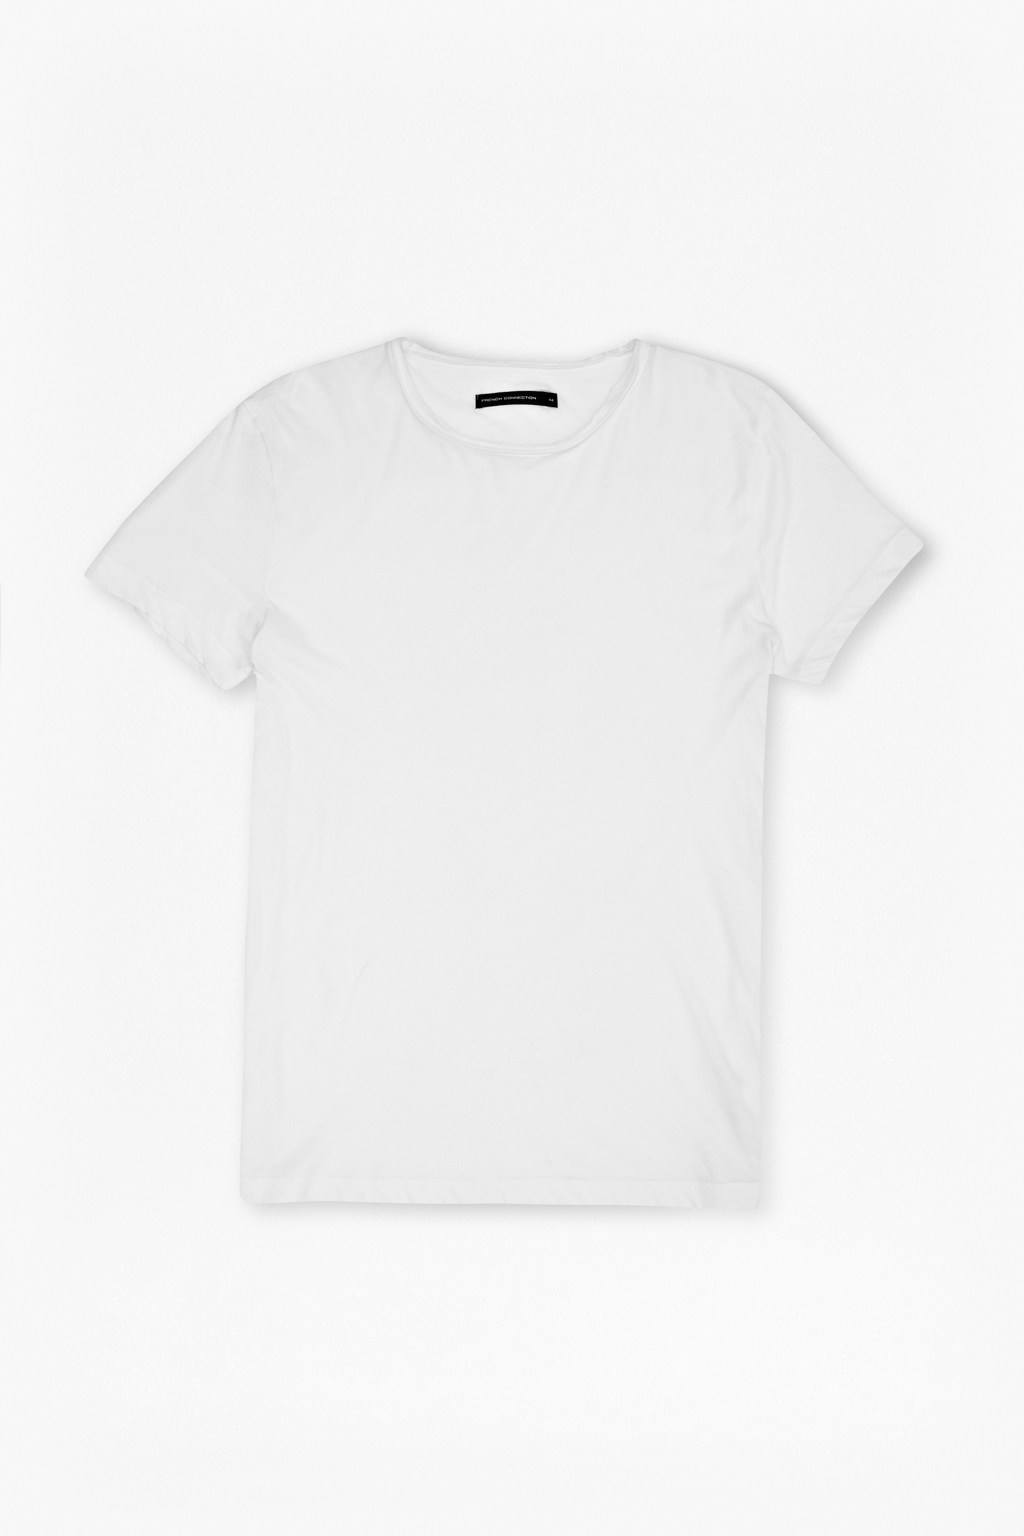 Black t shirt rolled up sleeves - Rolled Edge Plain T Shirt Loading Images